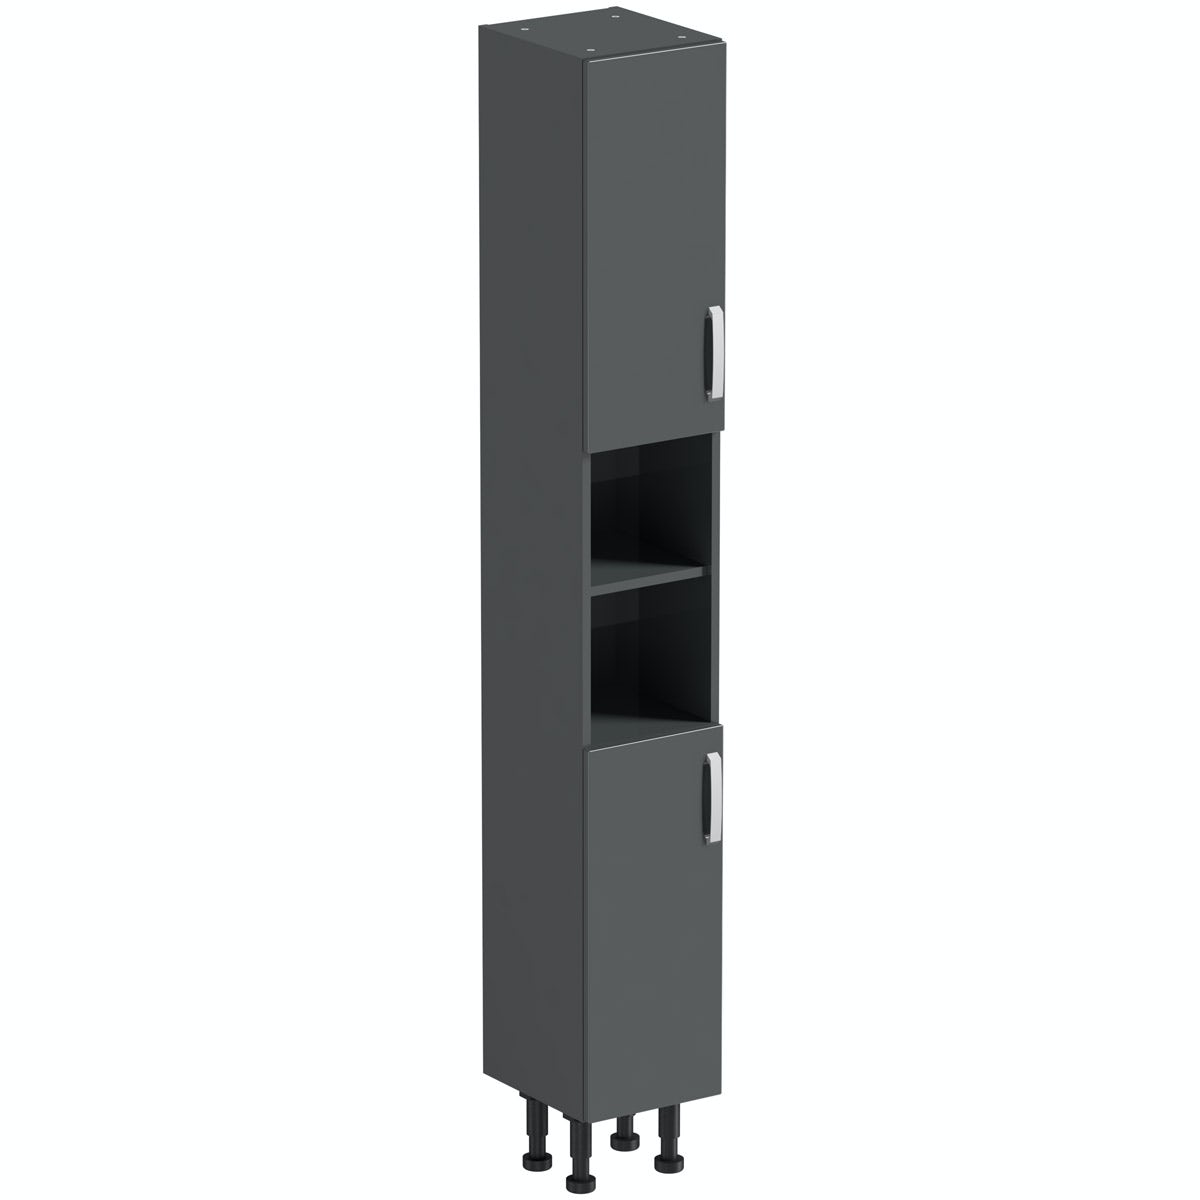 Mode Nouvel gloss grey tall cabinet